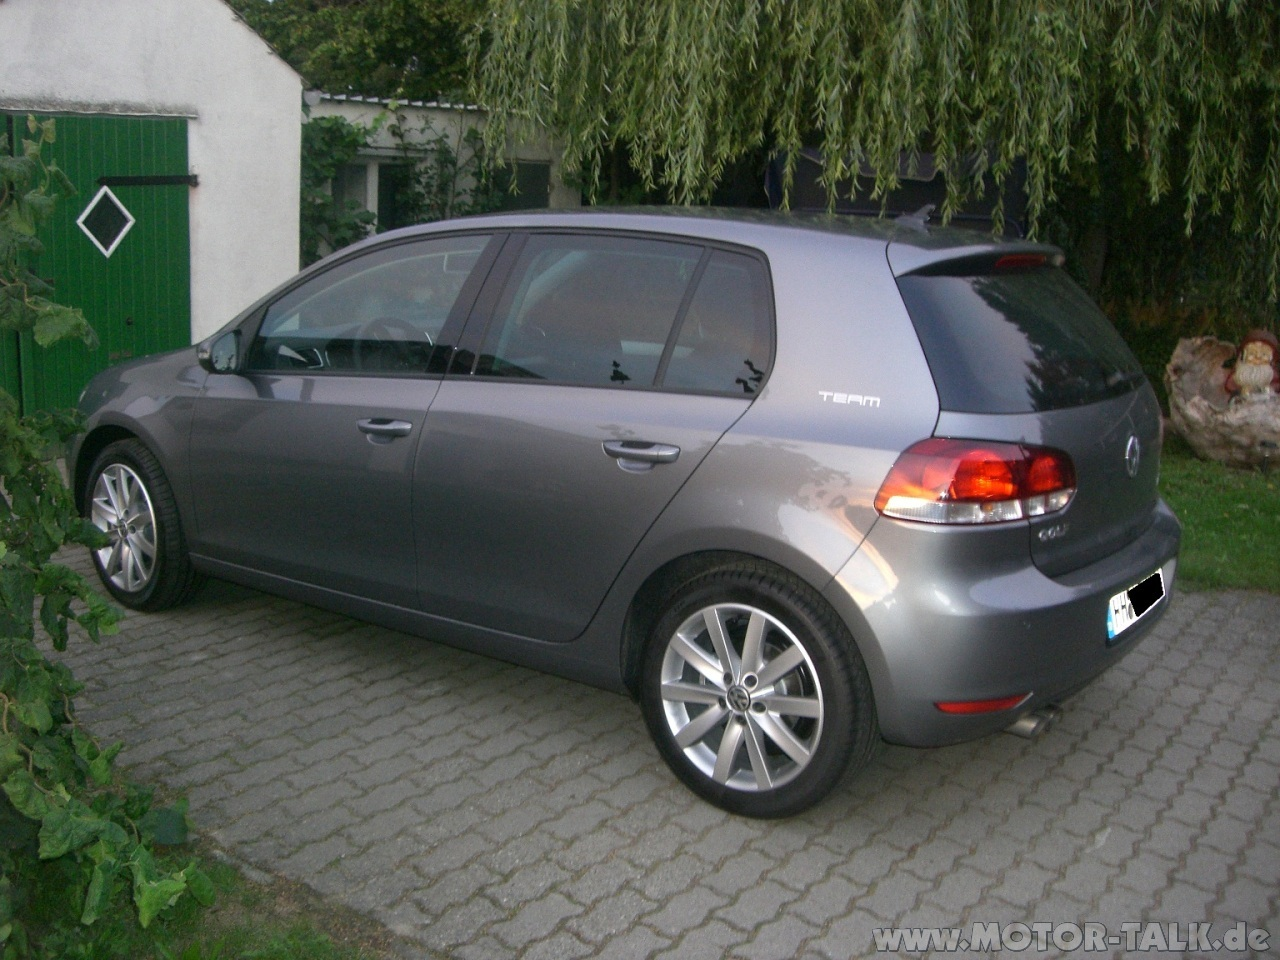 golf 6 united grey 3 volkswagen golf vi 1k 1 4 tsi von basti19801 fahrzeuge 203515432. Black Bedroom Furniture Sets. Home Design Ideas